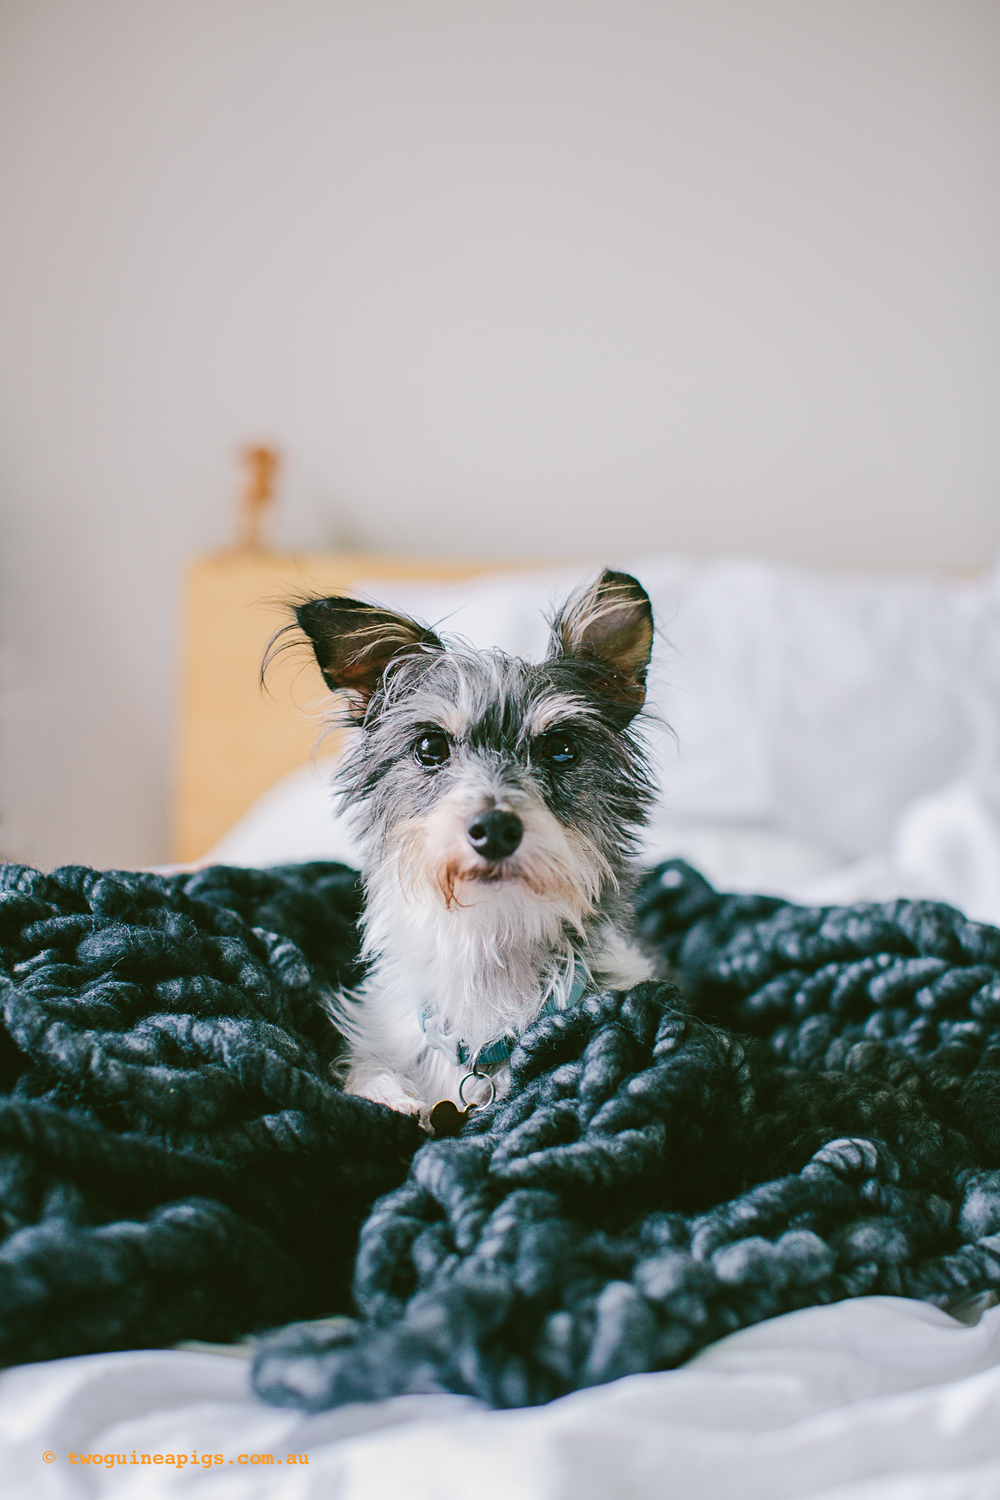 twoguineapigs_pet_photography_marikit_kitty_ash_chunky_blanket_hugo_terrior_jack_russell_1500-51.jpg